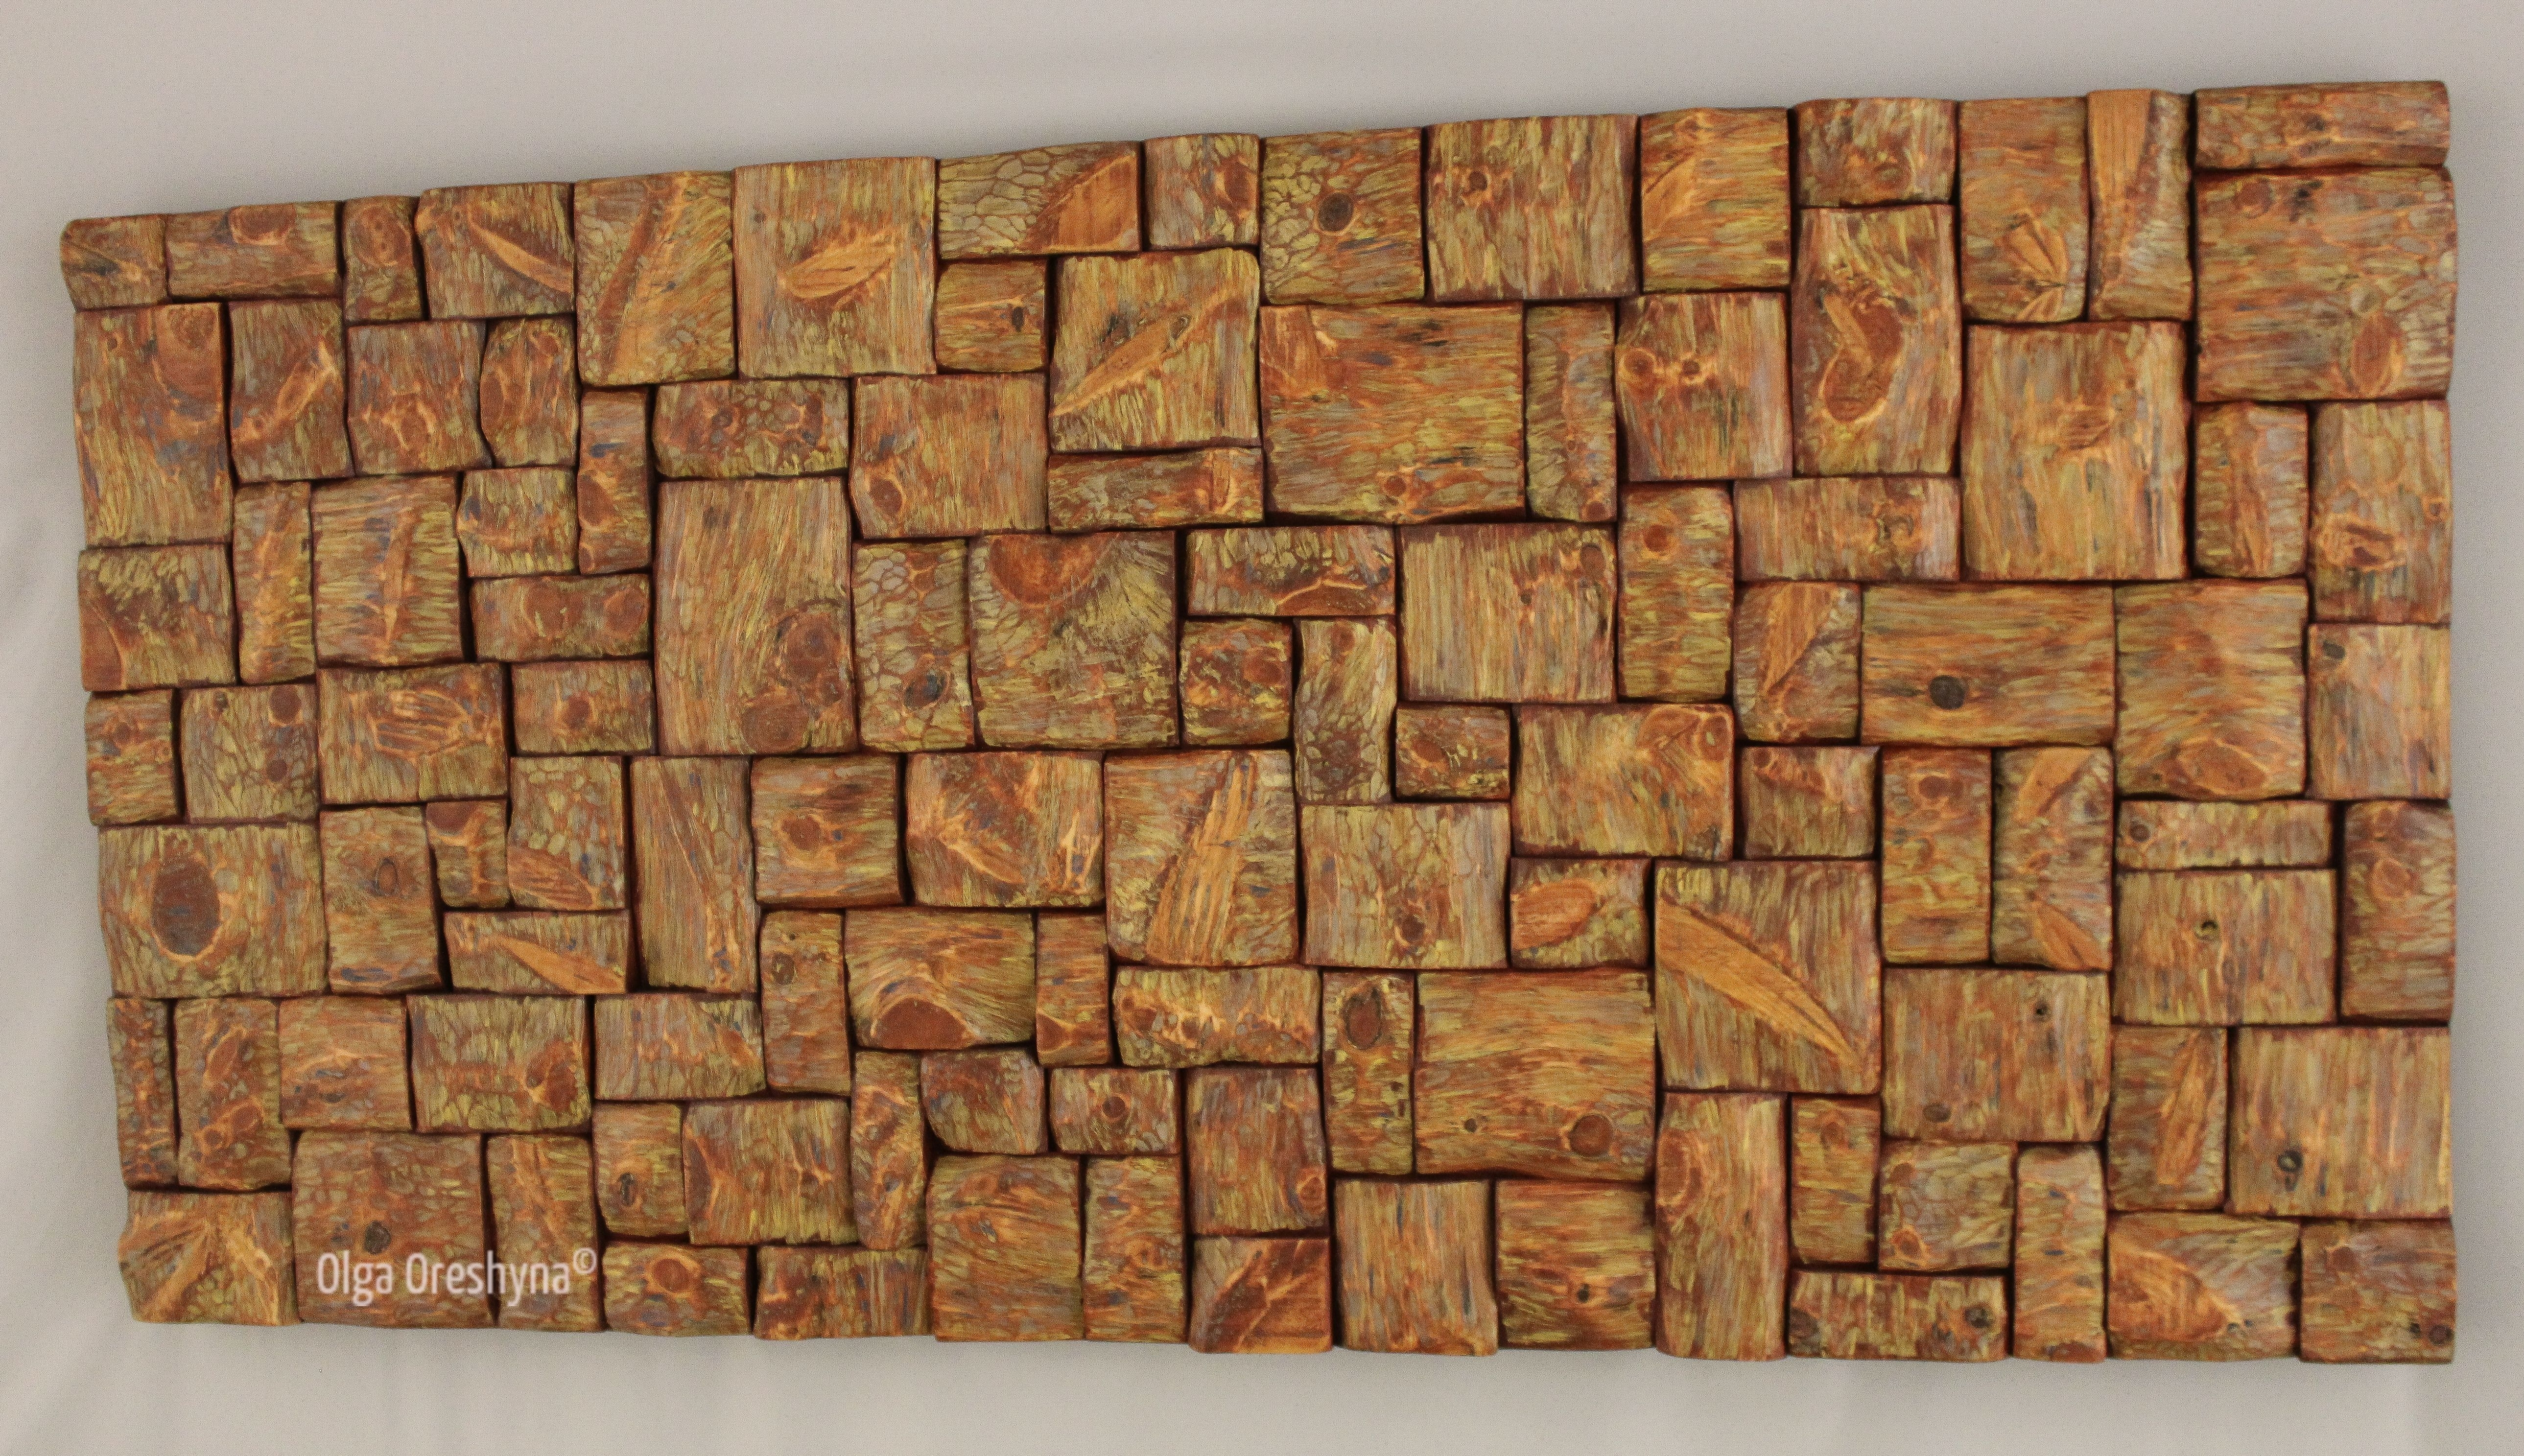 Wall Art Decor Ideas Artistic Hanging Wood Art Wall Reclaimed With Inside Most Up To Date Wood Art Wall (View 12 of 15)